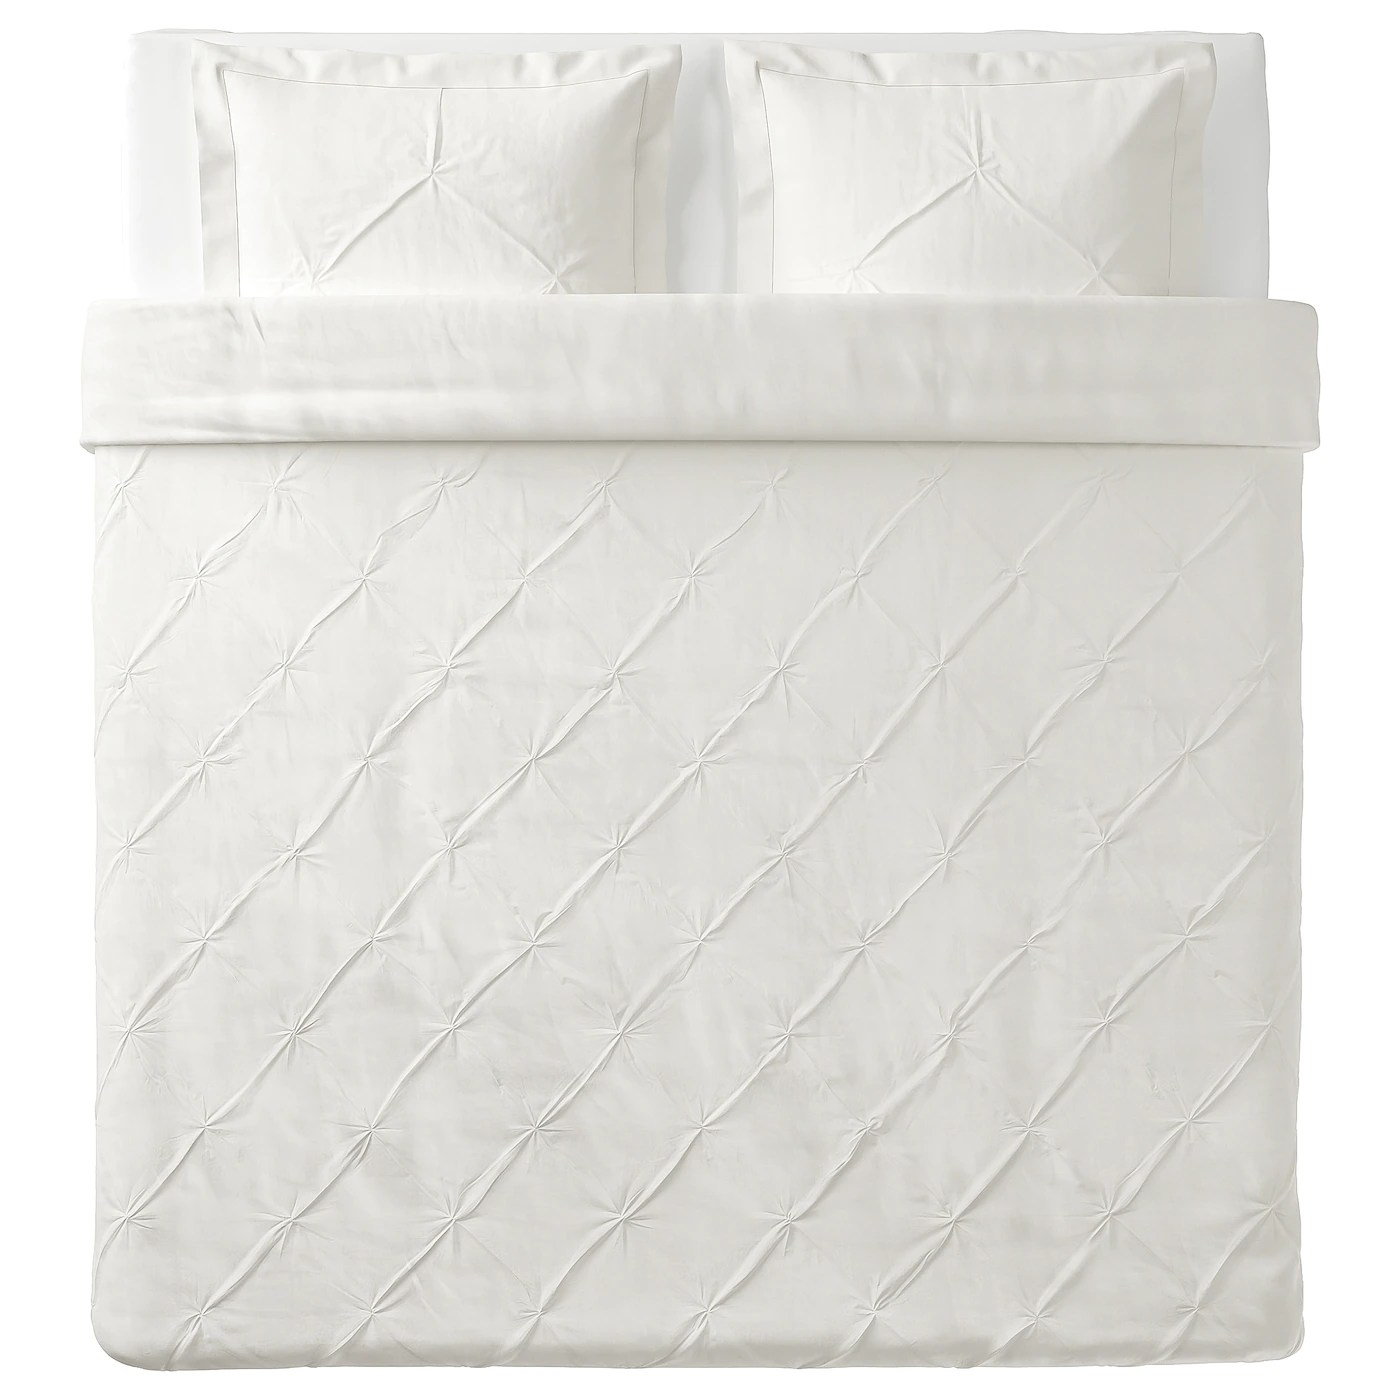 Trubbtag Housse Couette 2 Taies Blanc 240x220 65x65 Cm Ikea